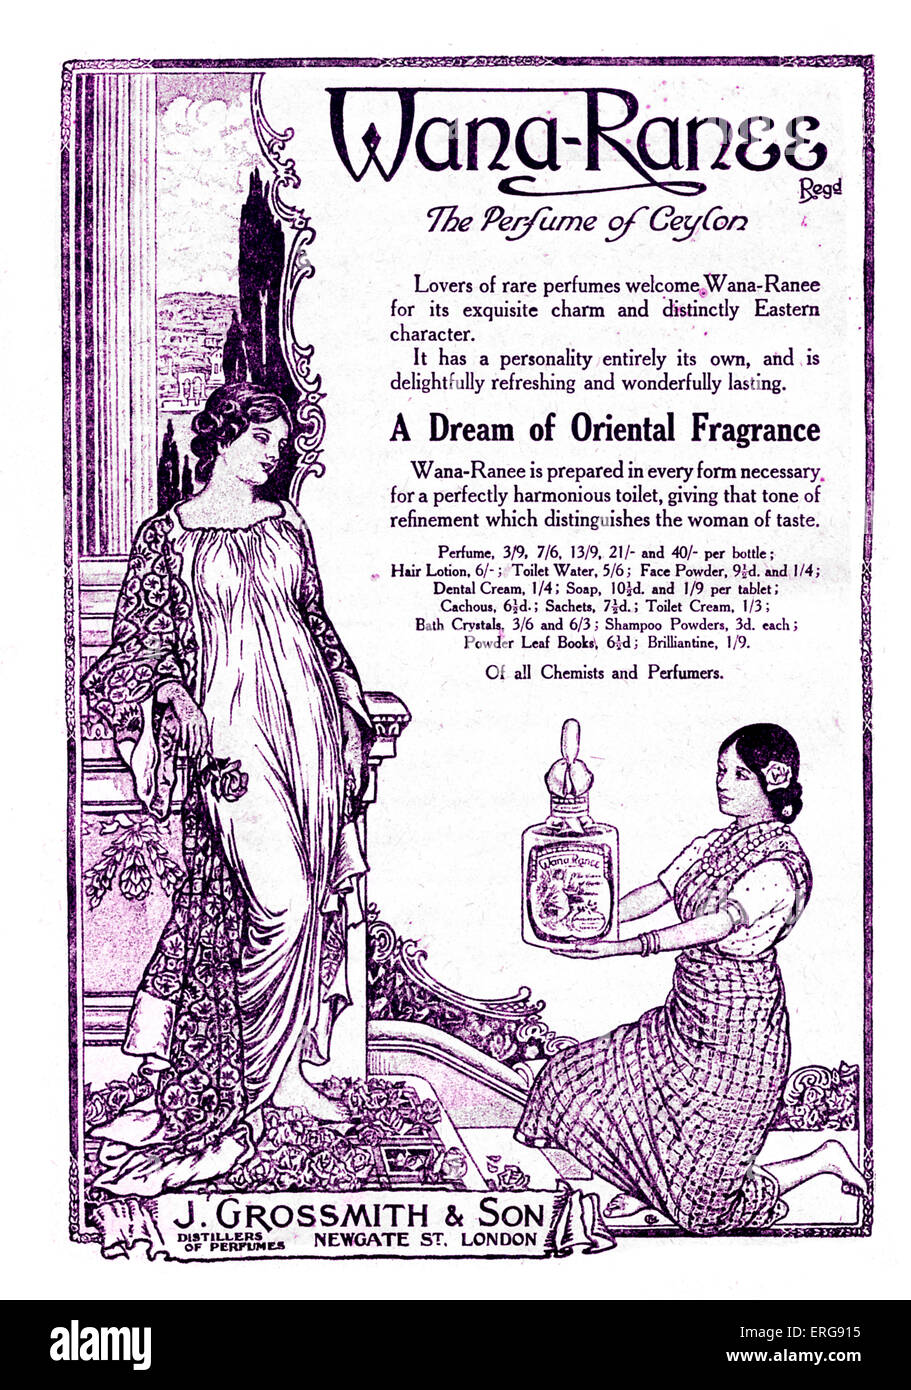 Wana- Ranee perfume - advertisement, 1918. Made by J. Gorssmith & Son, London, UK. - Stock Image